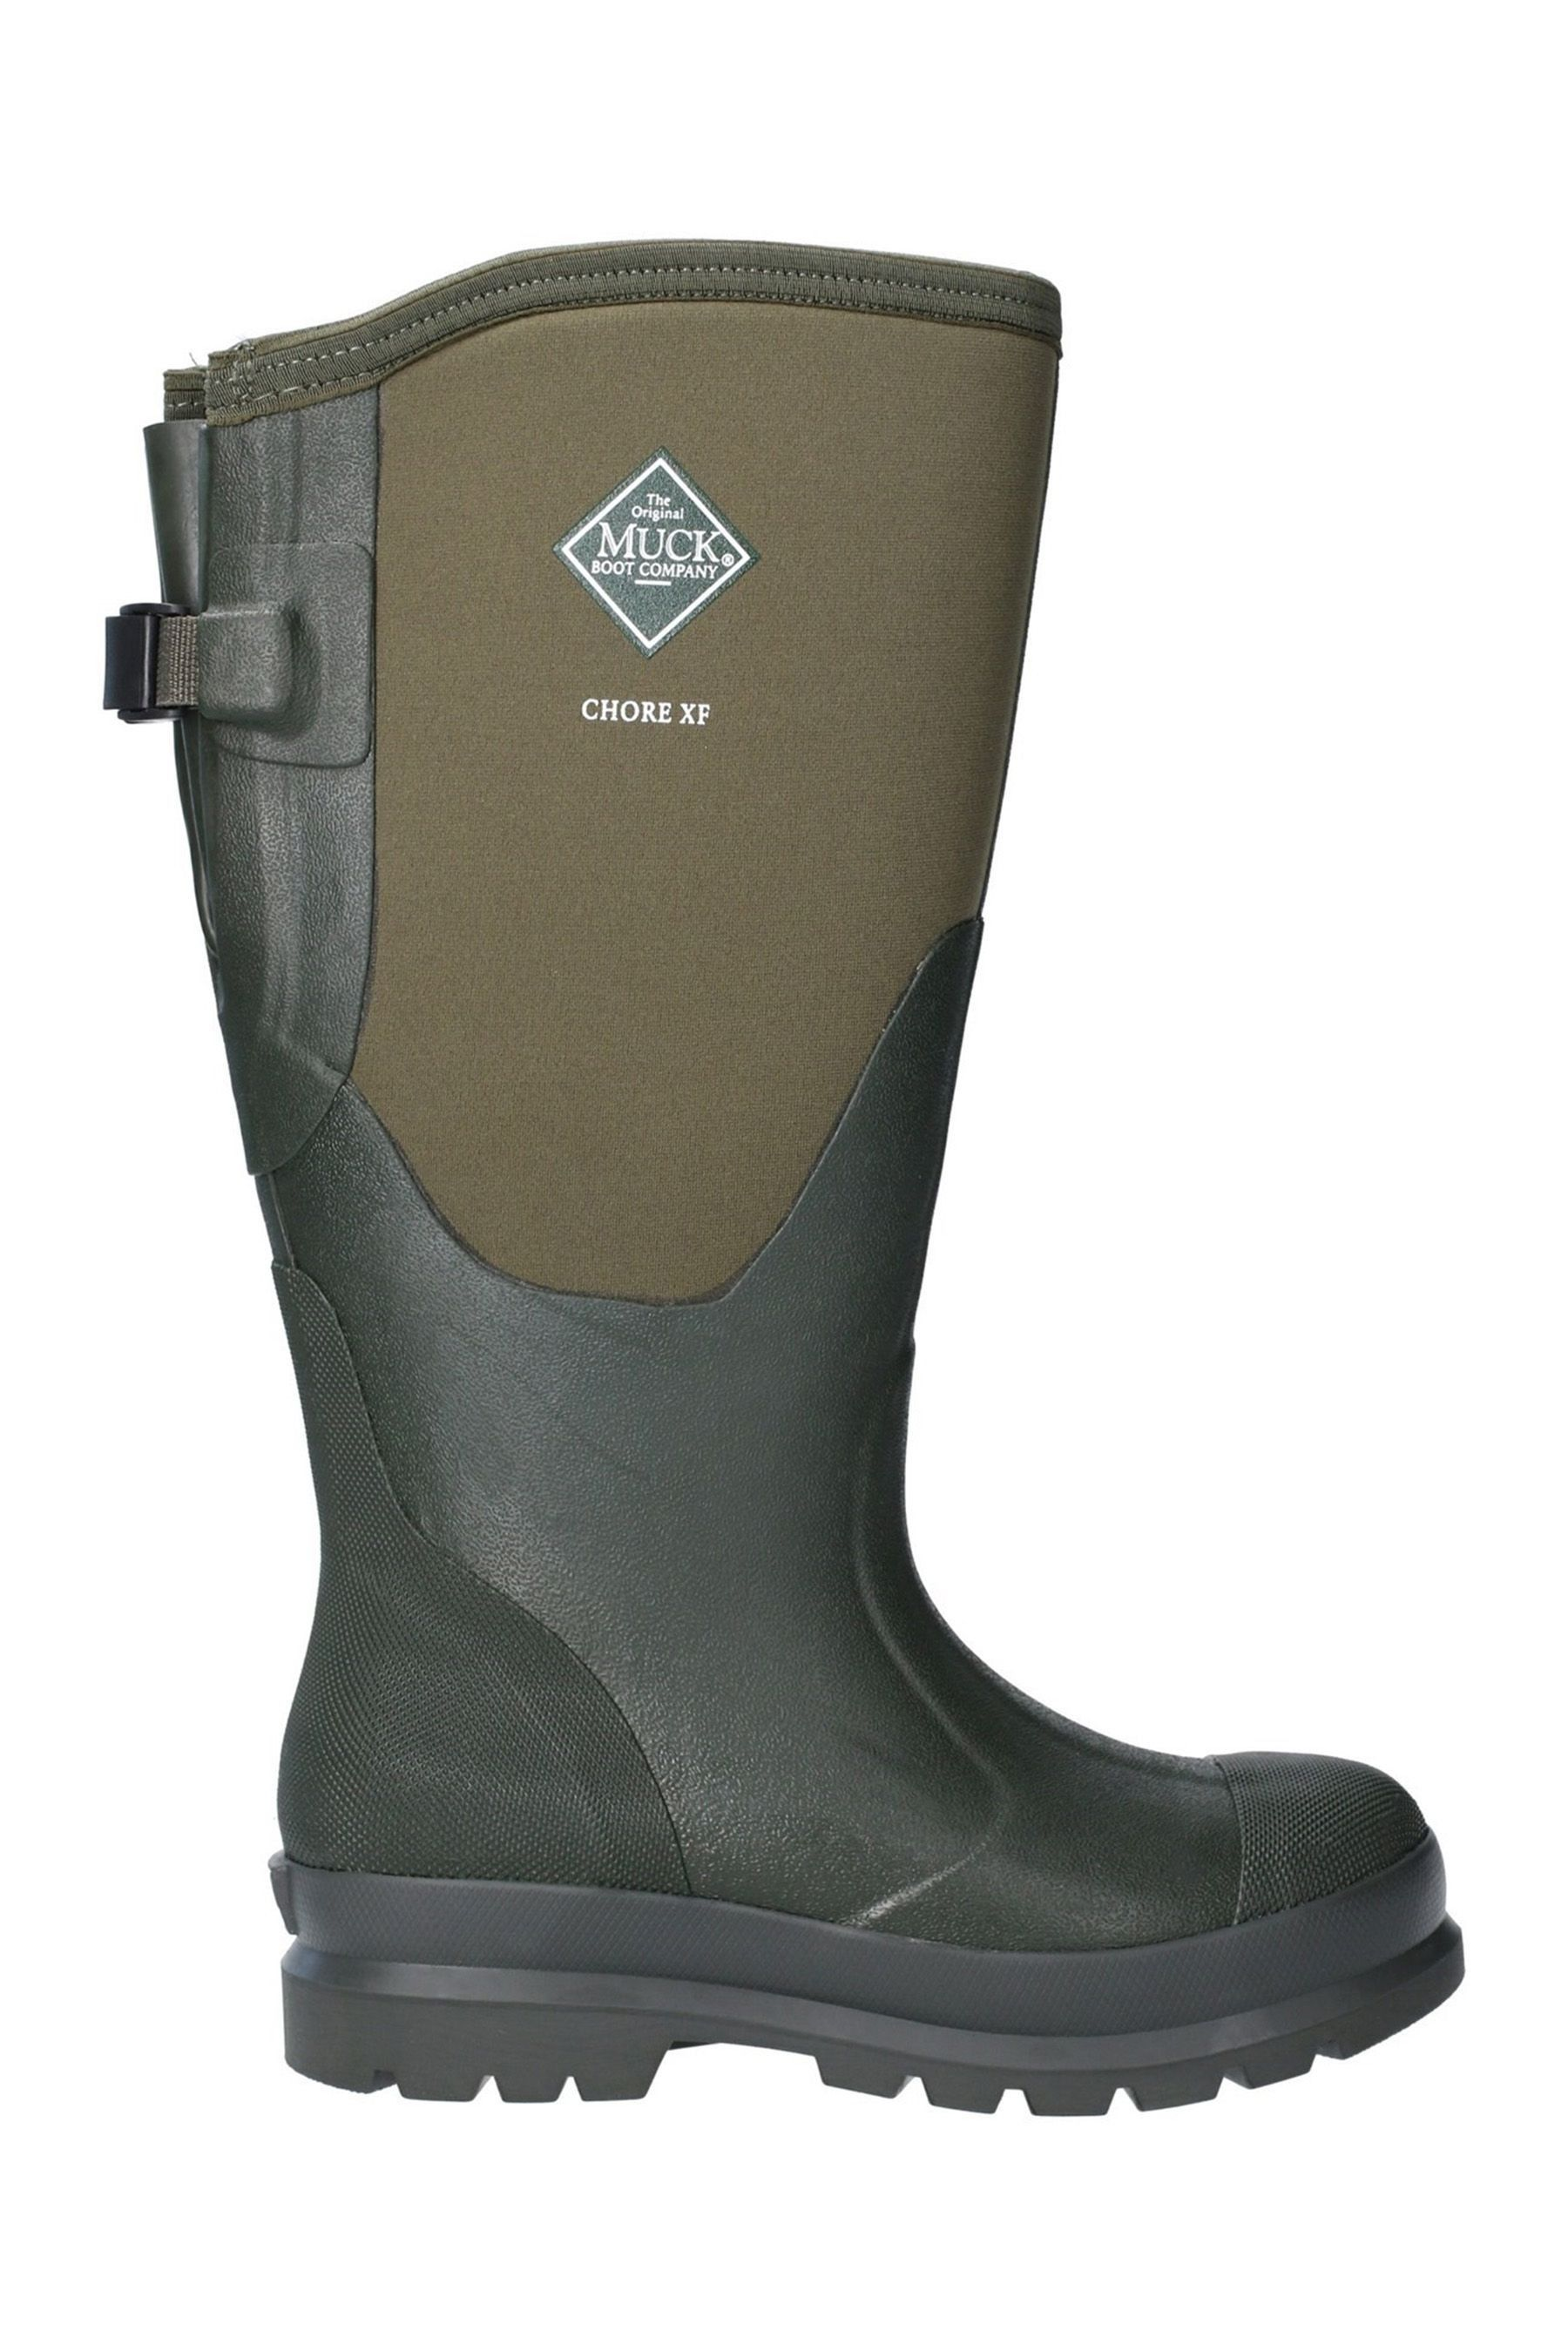 Muck Boot Chore Rubber Womens Work Boot